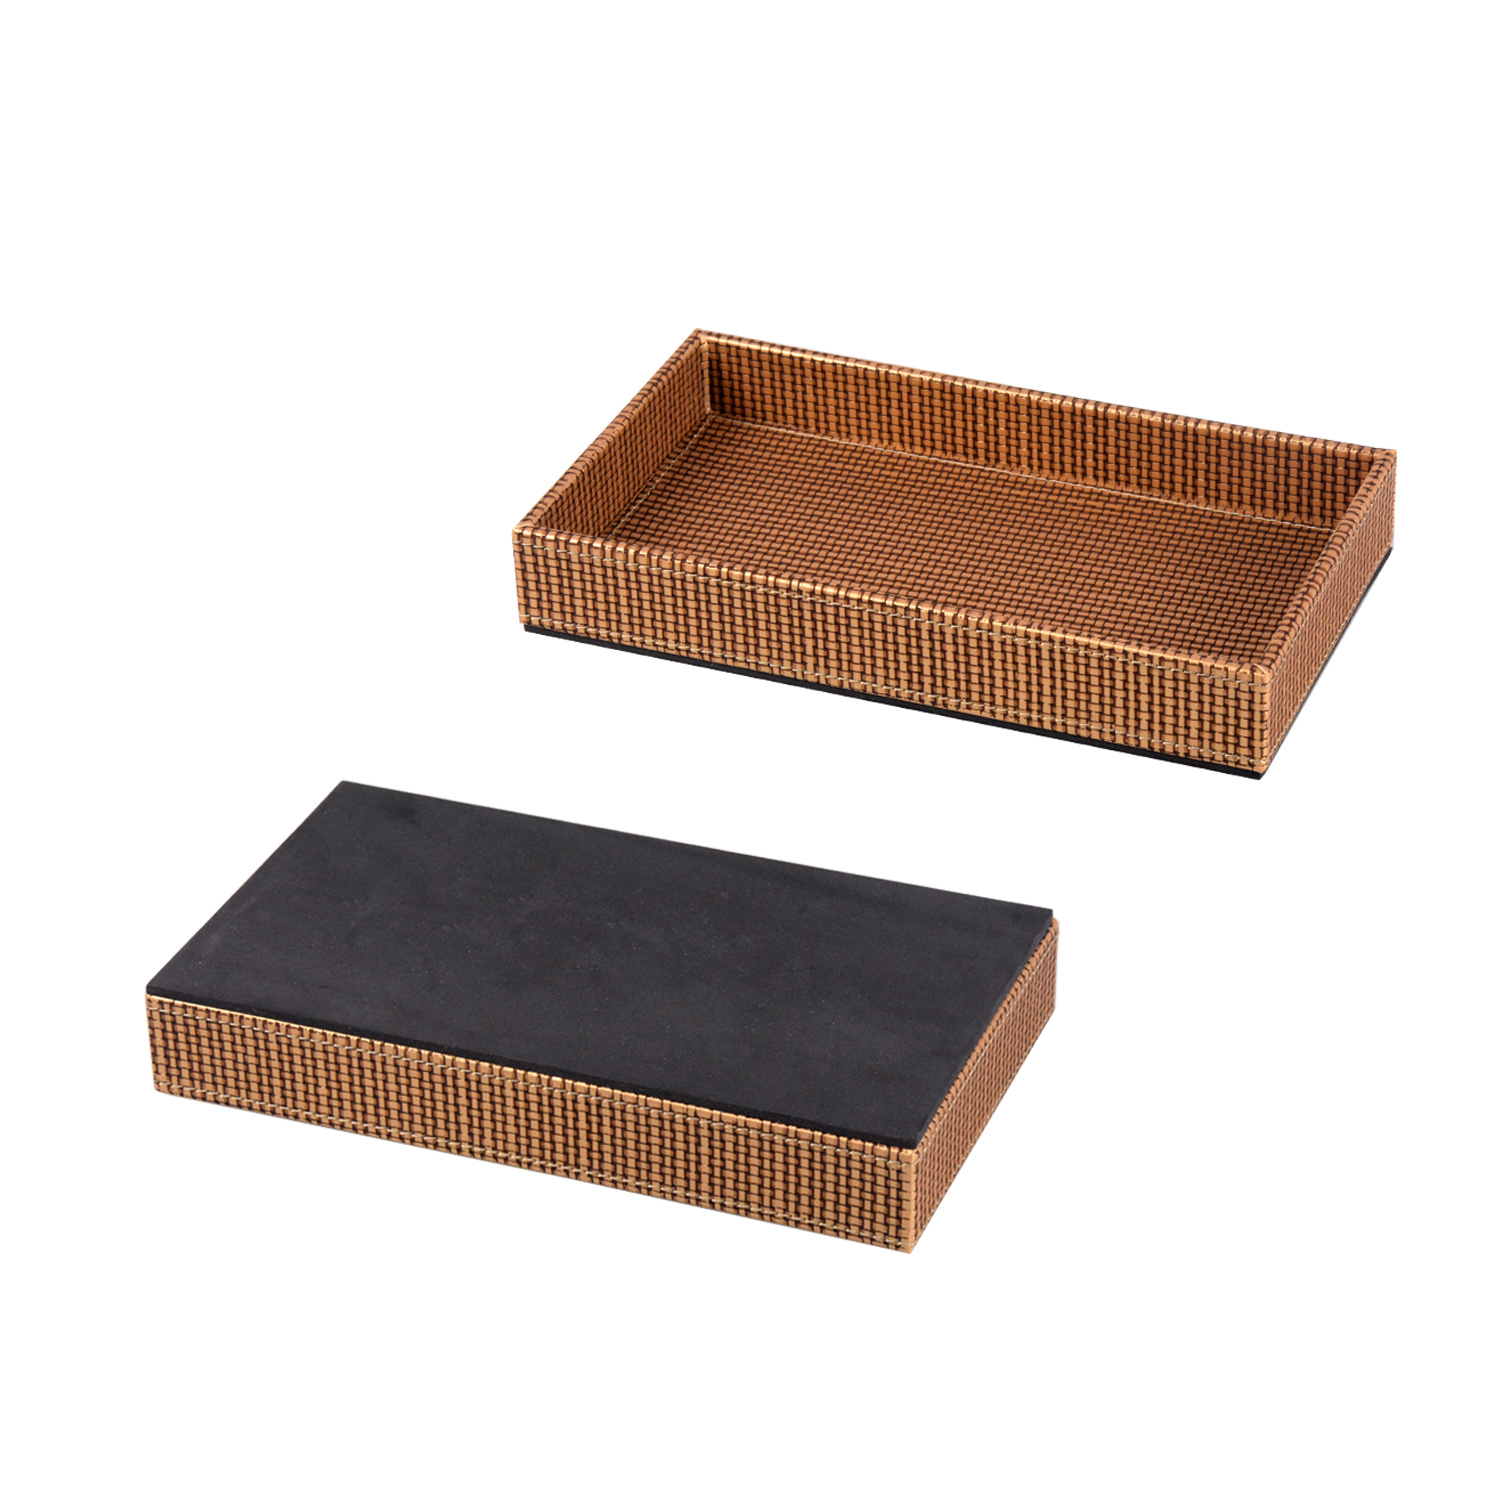 Large creative woven pattern PU leather serving tray